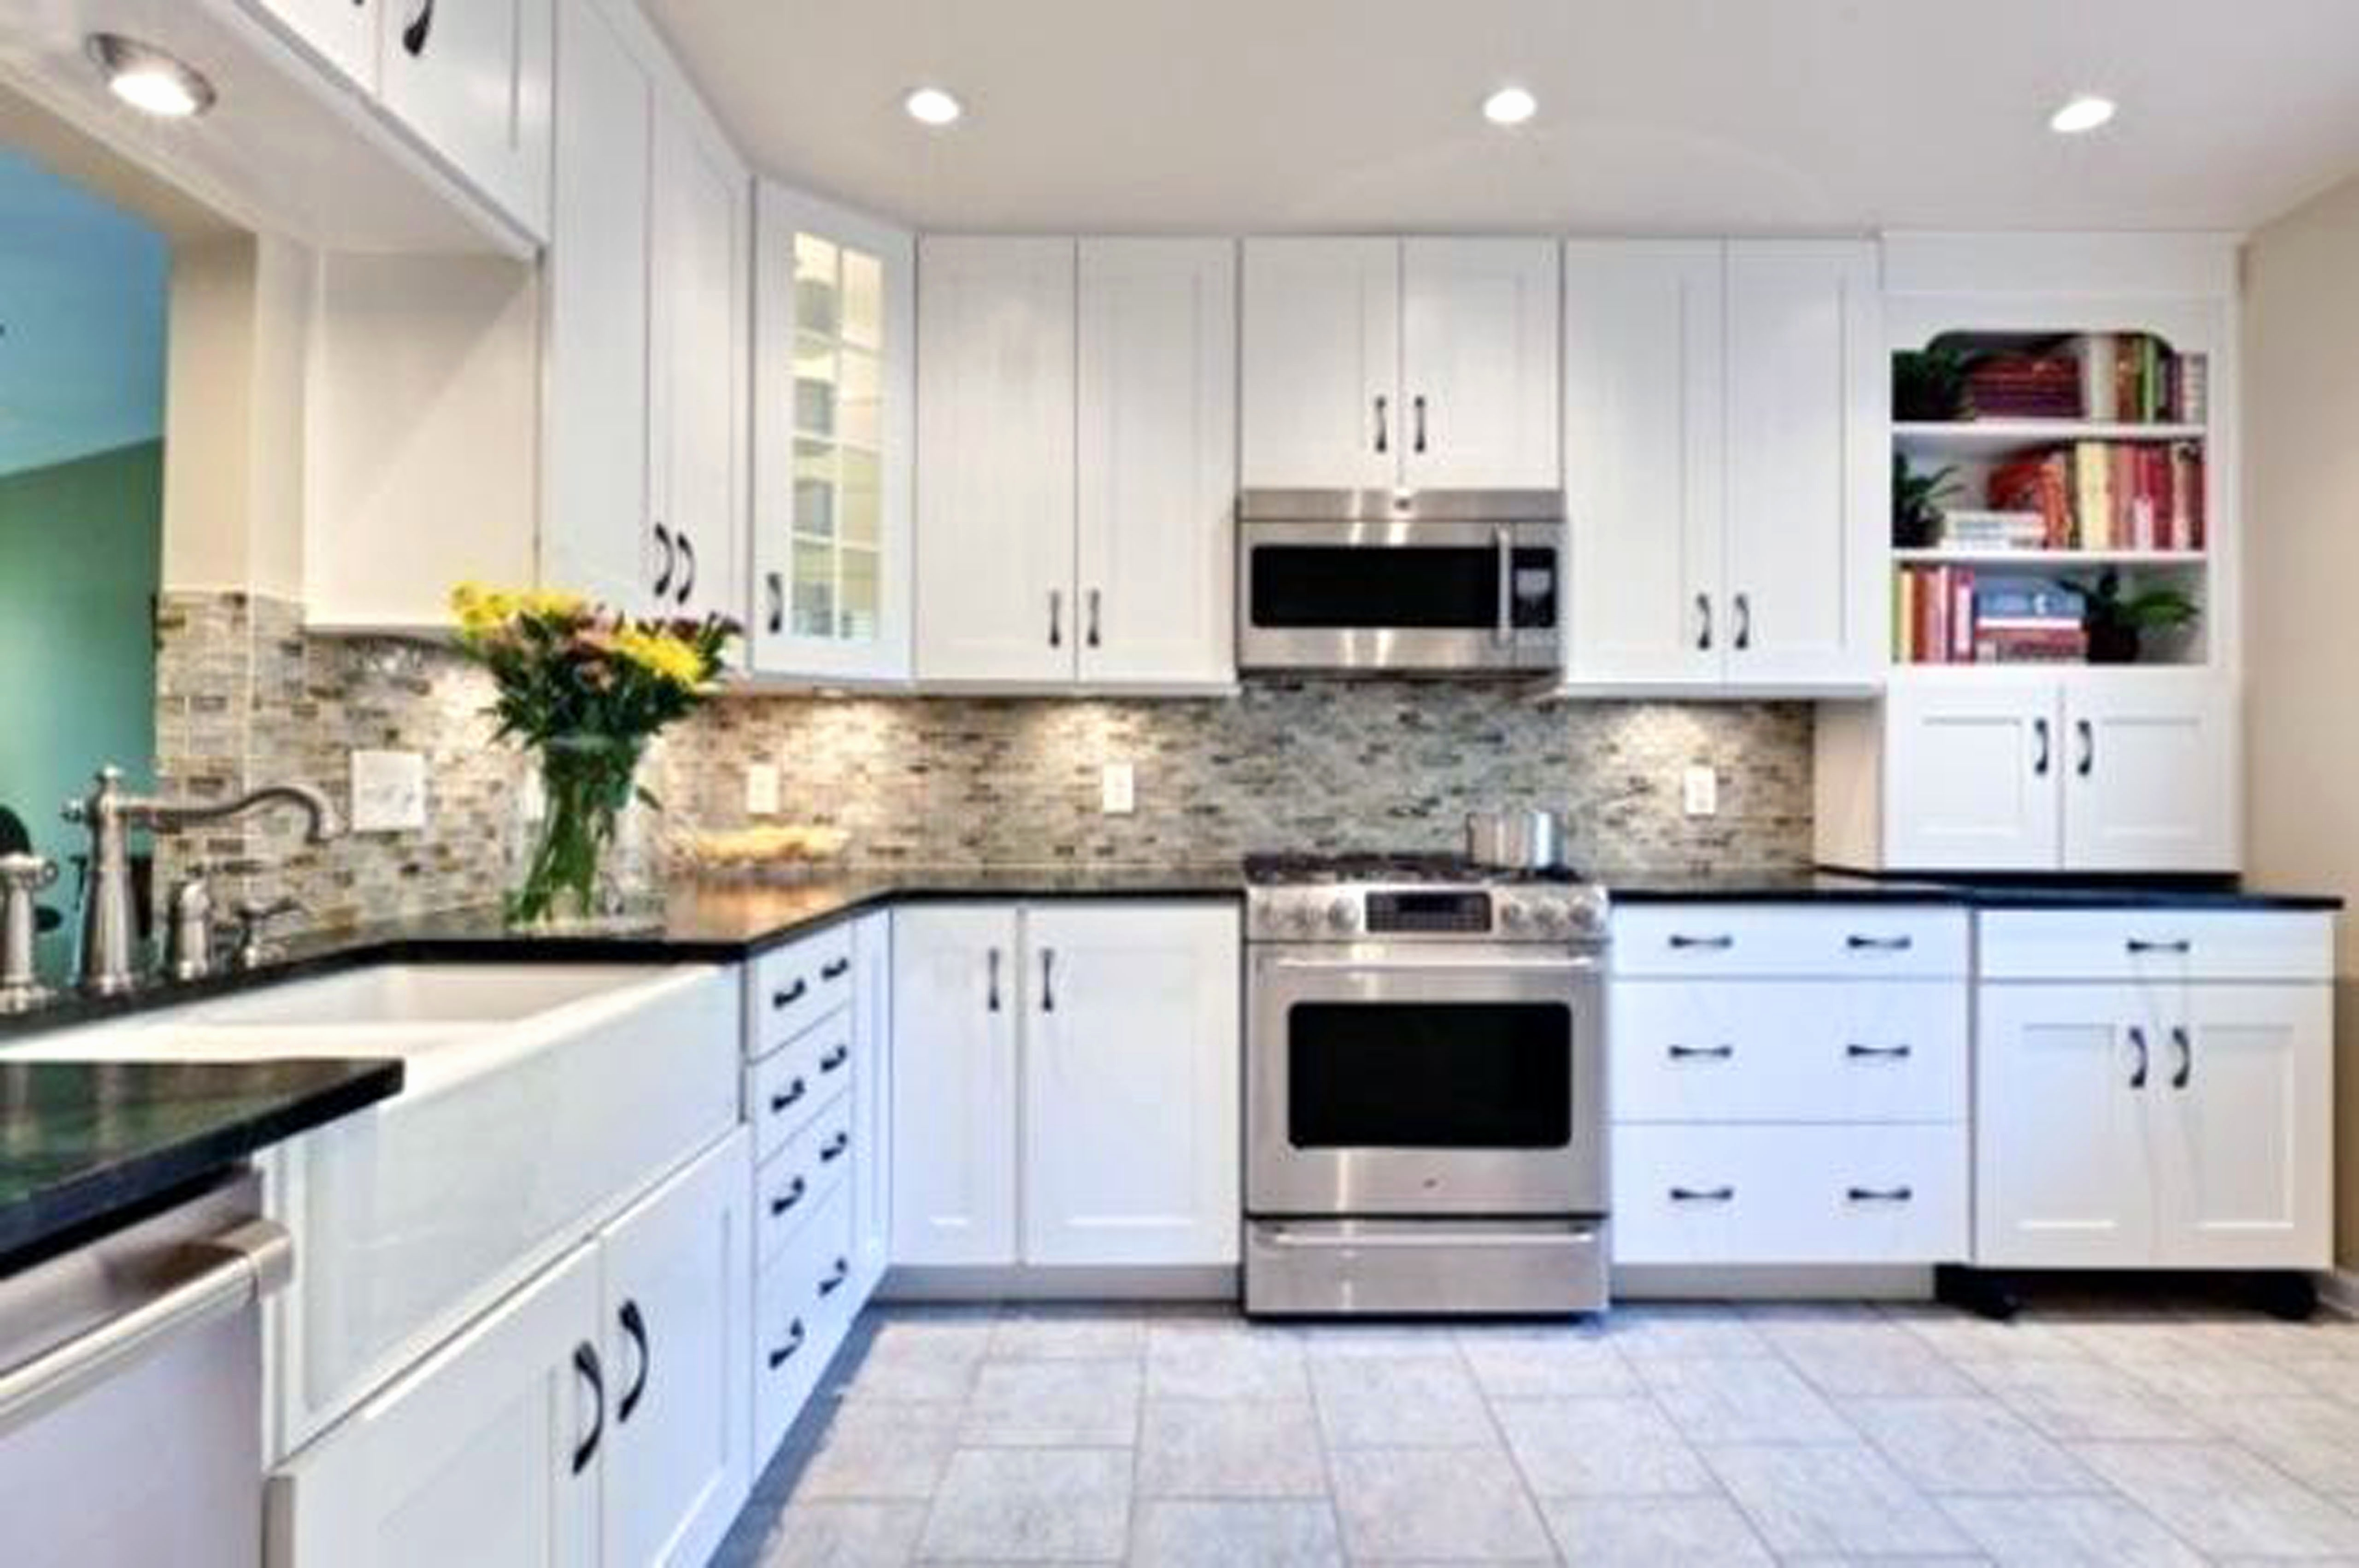 kitchen with white cabinets and black countertops ... kitchen backsplash ideas for white cabinets black countertops ... NQCPUWP